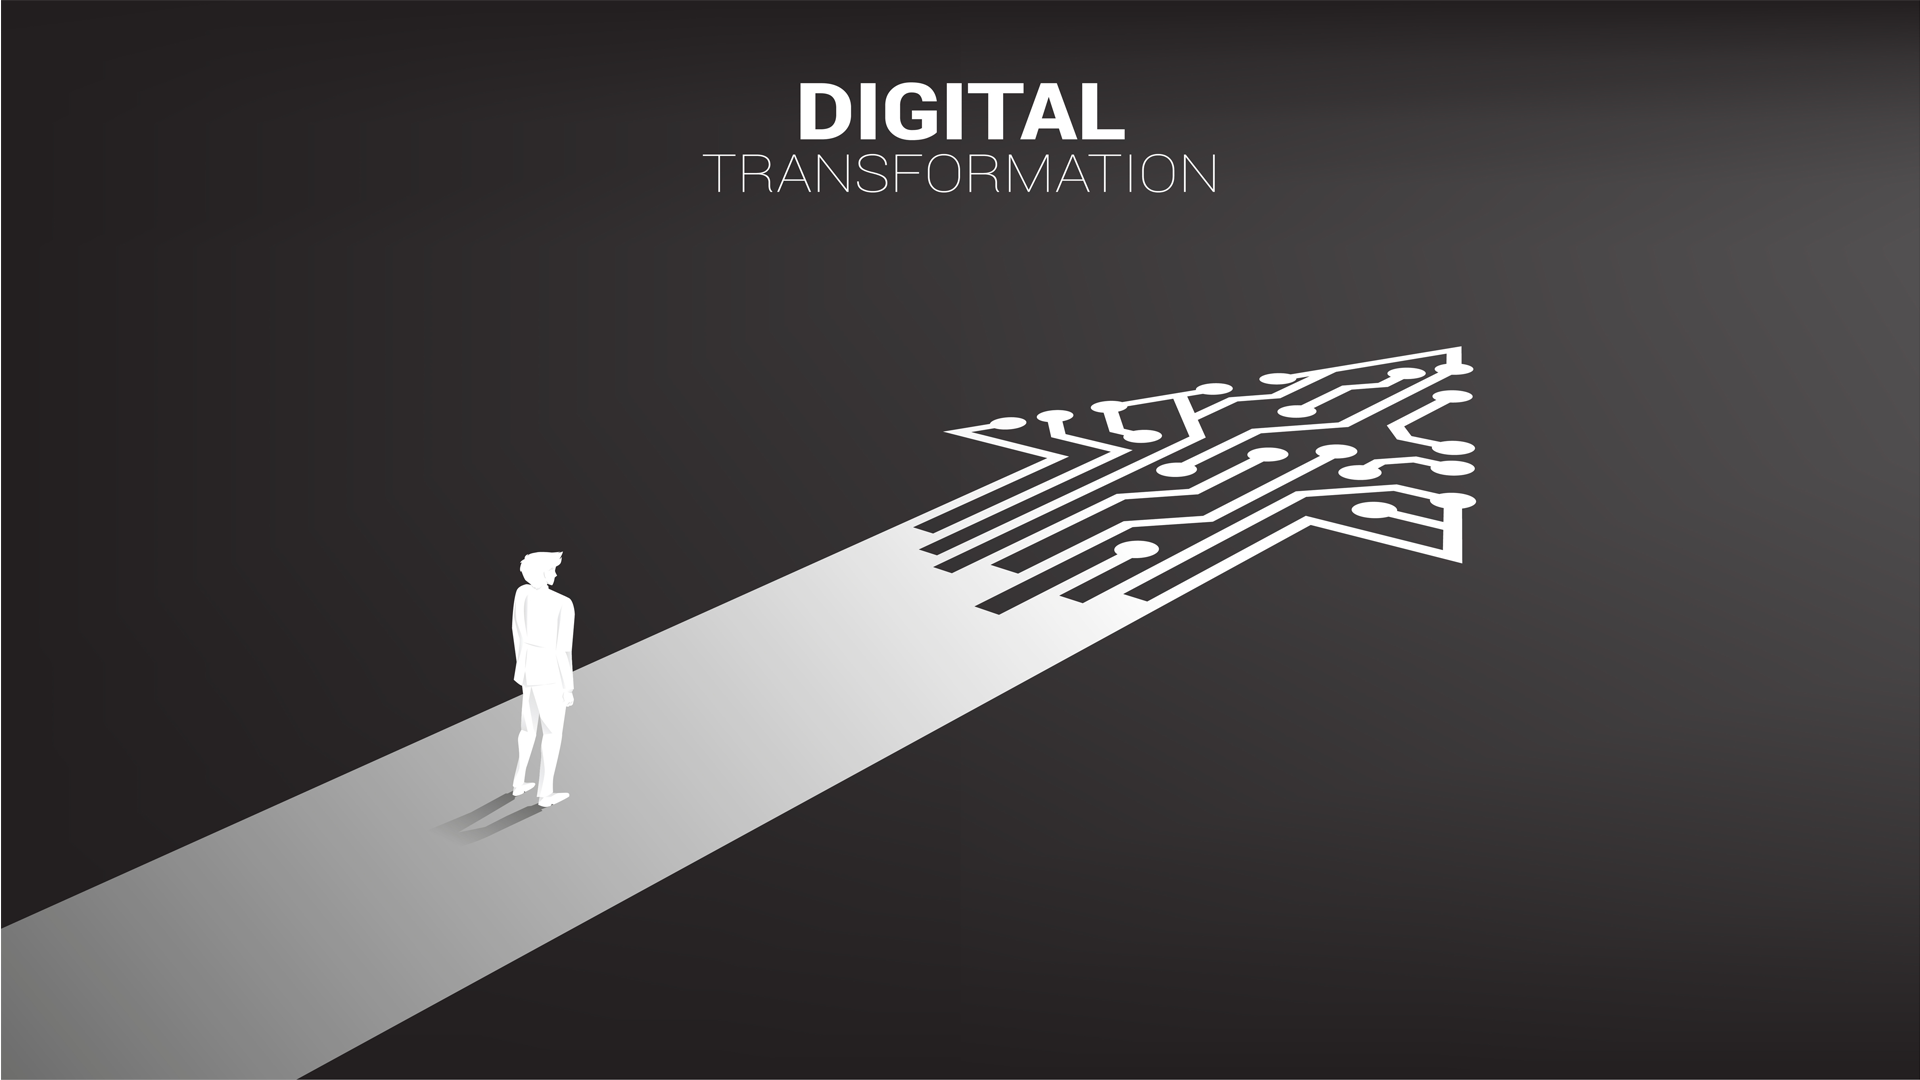 Digital Transformation is Impacting All Industries. Are you ready?